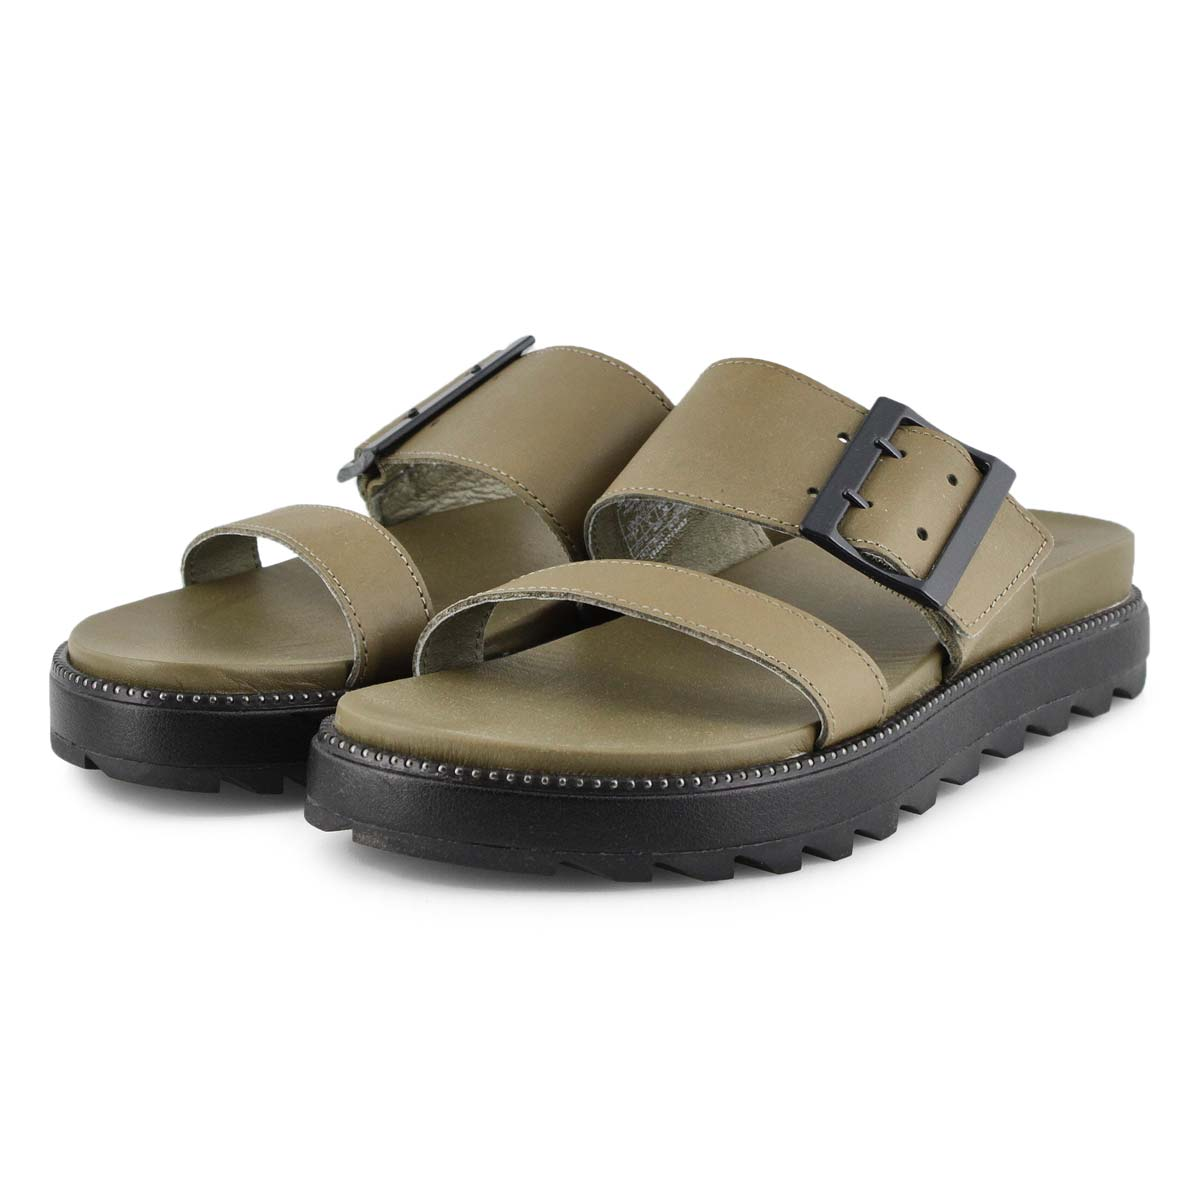 Lds Roaming Buckle Slide sage sandal